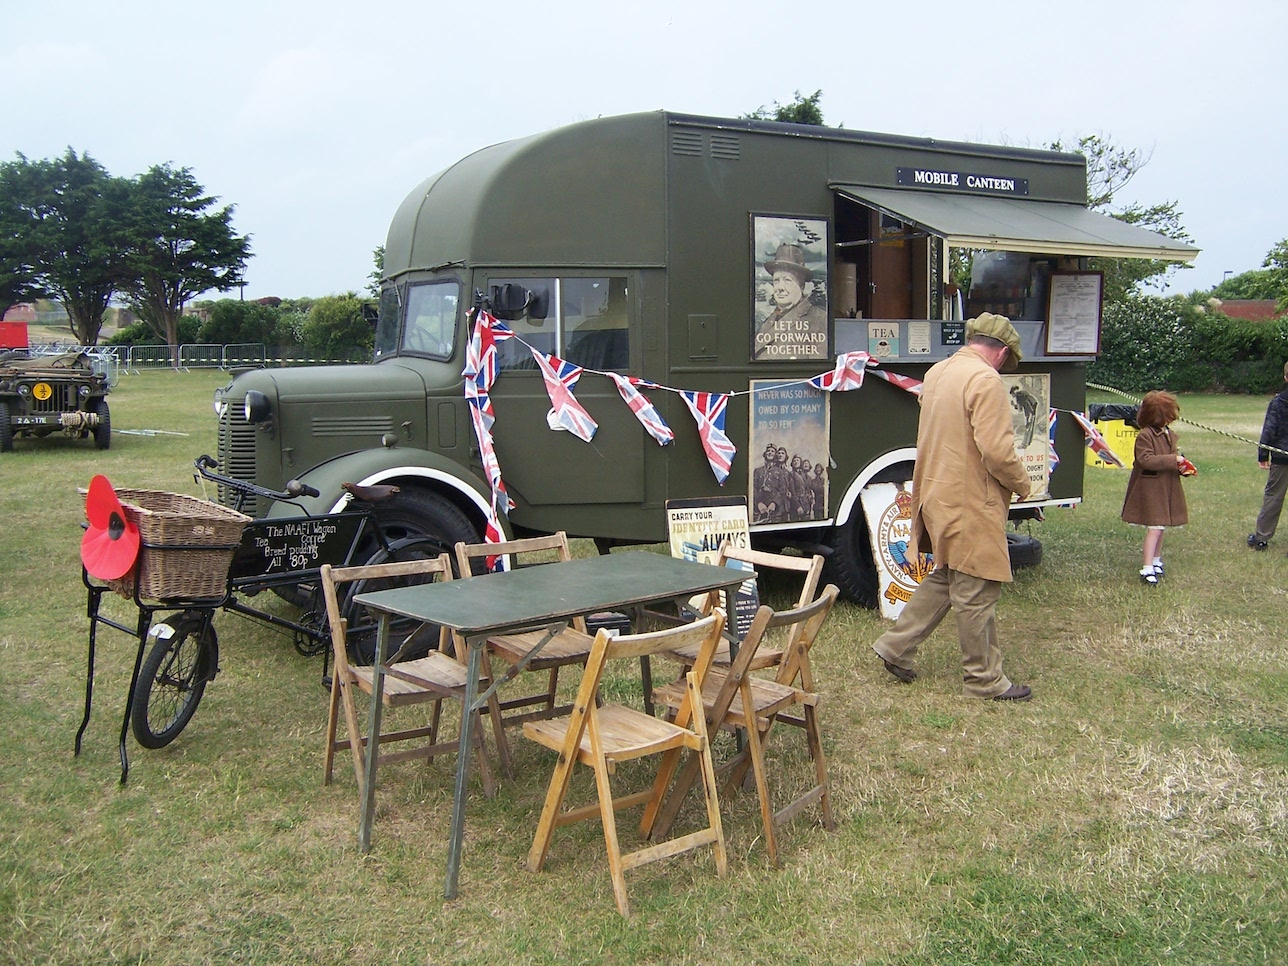 Vintage WW2 Mobile Canteen on display © Lemuel Lyes 2009